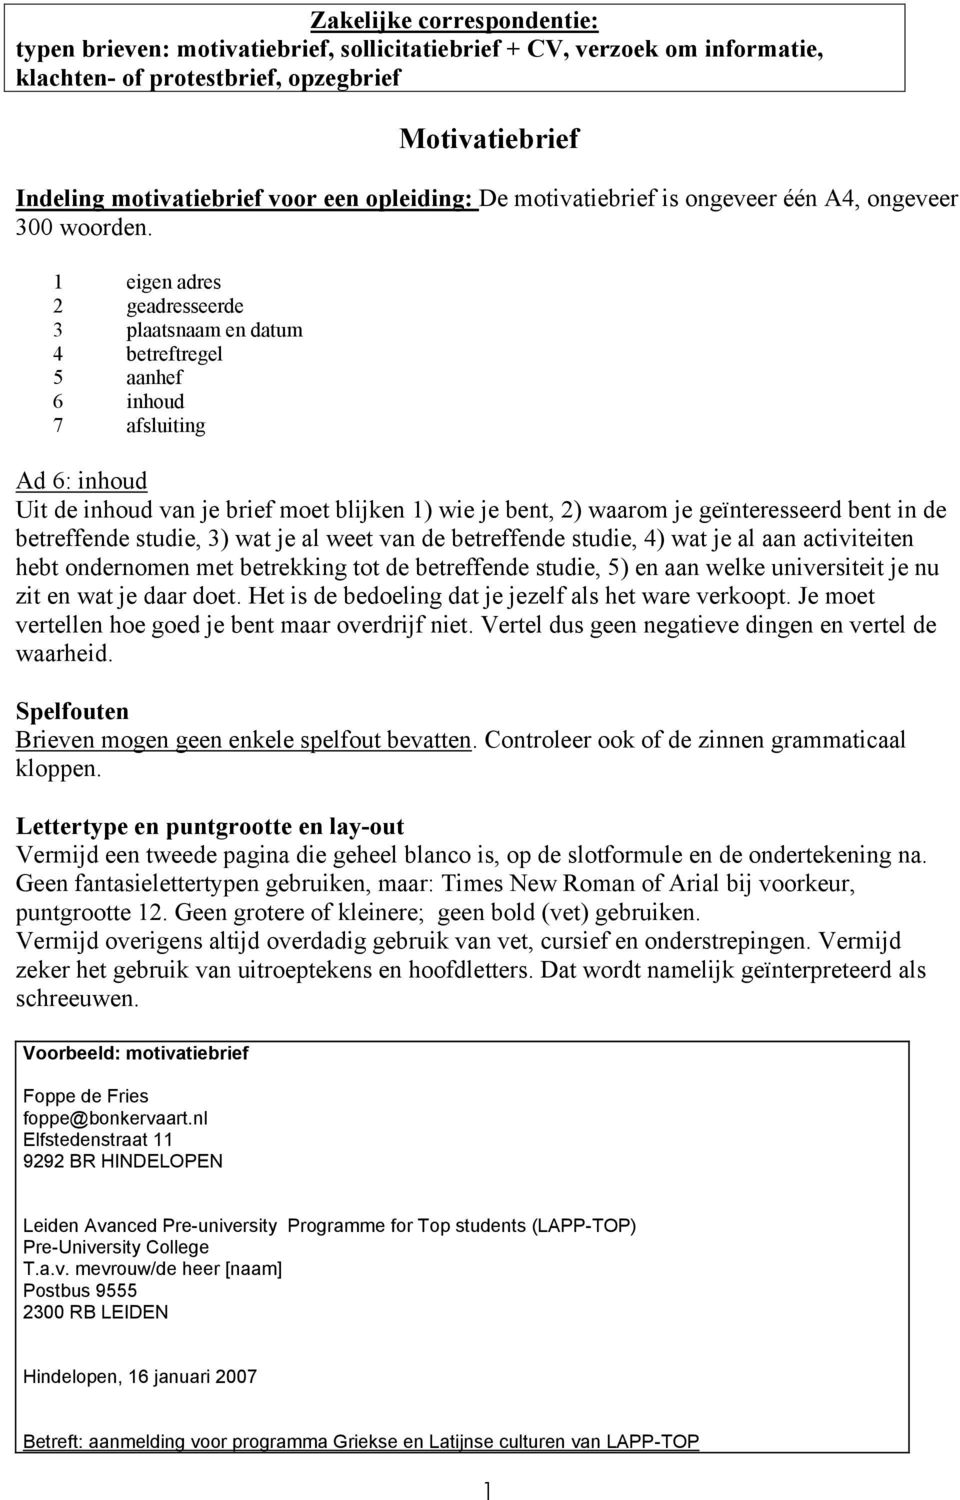 motivatiebrief universiteit leiden Zakelijke correspondentie: typen brieven: motivatiebrief  motivatiebrief universiteit leiden